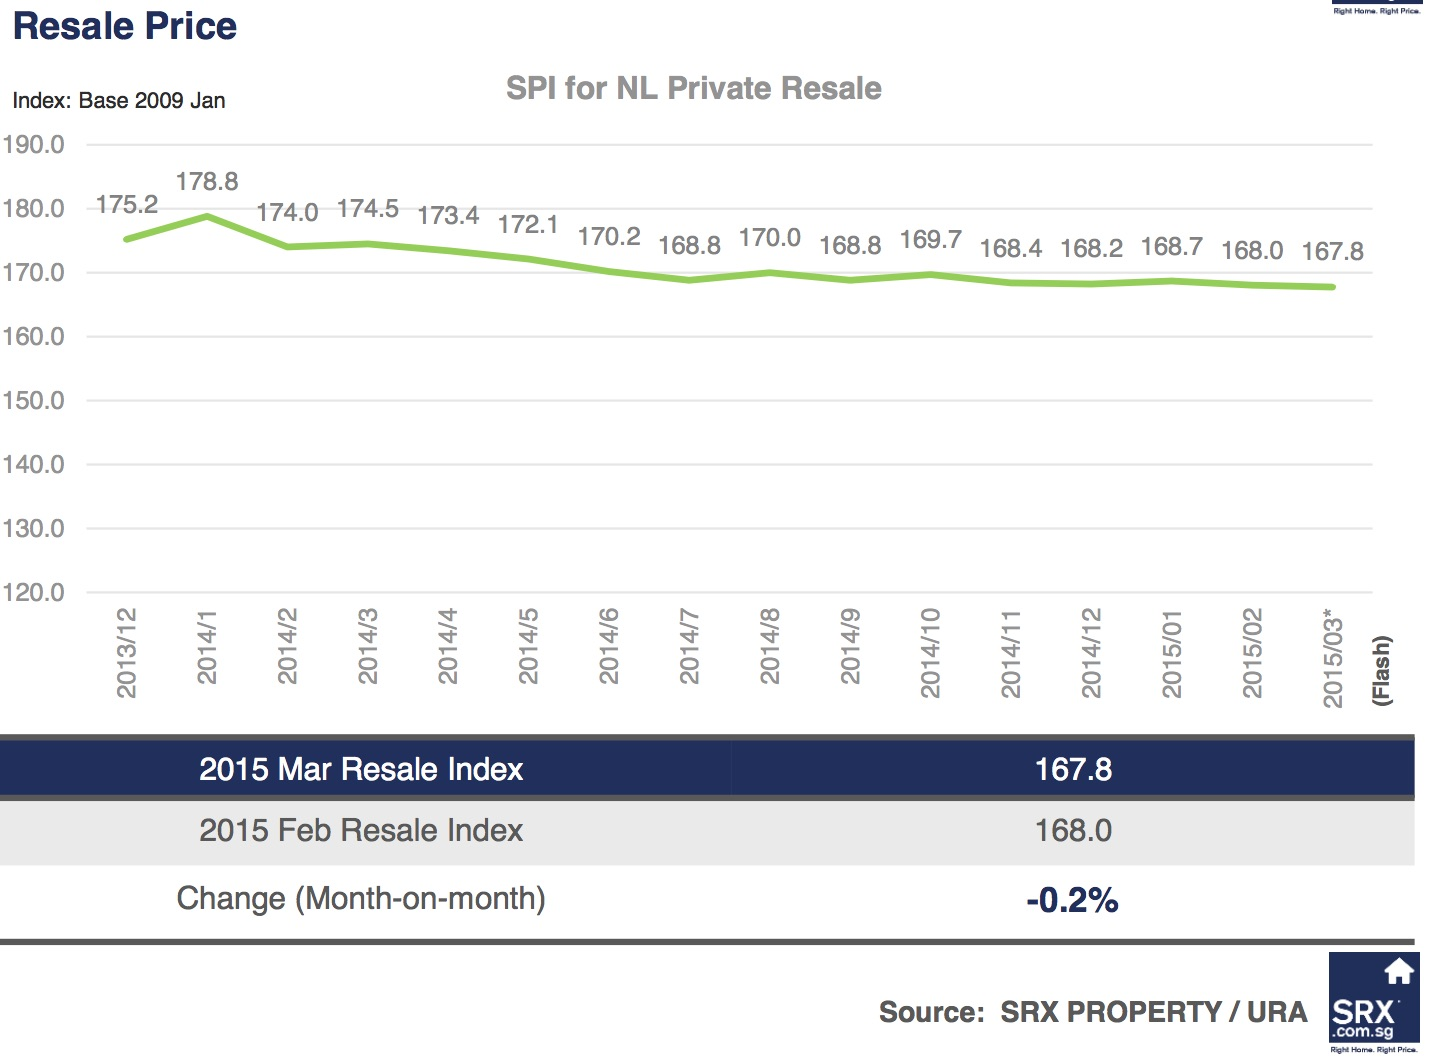 Singapore Price Index: Resale price dipped, volume up from February